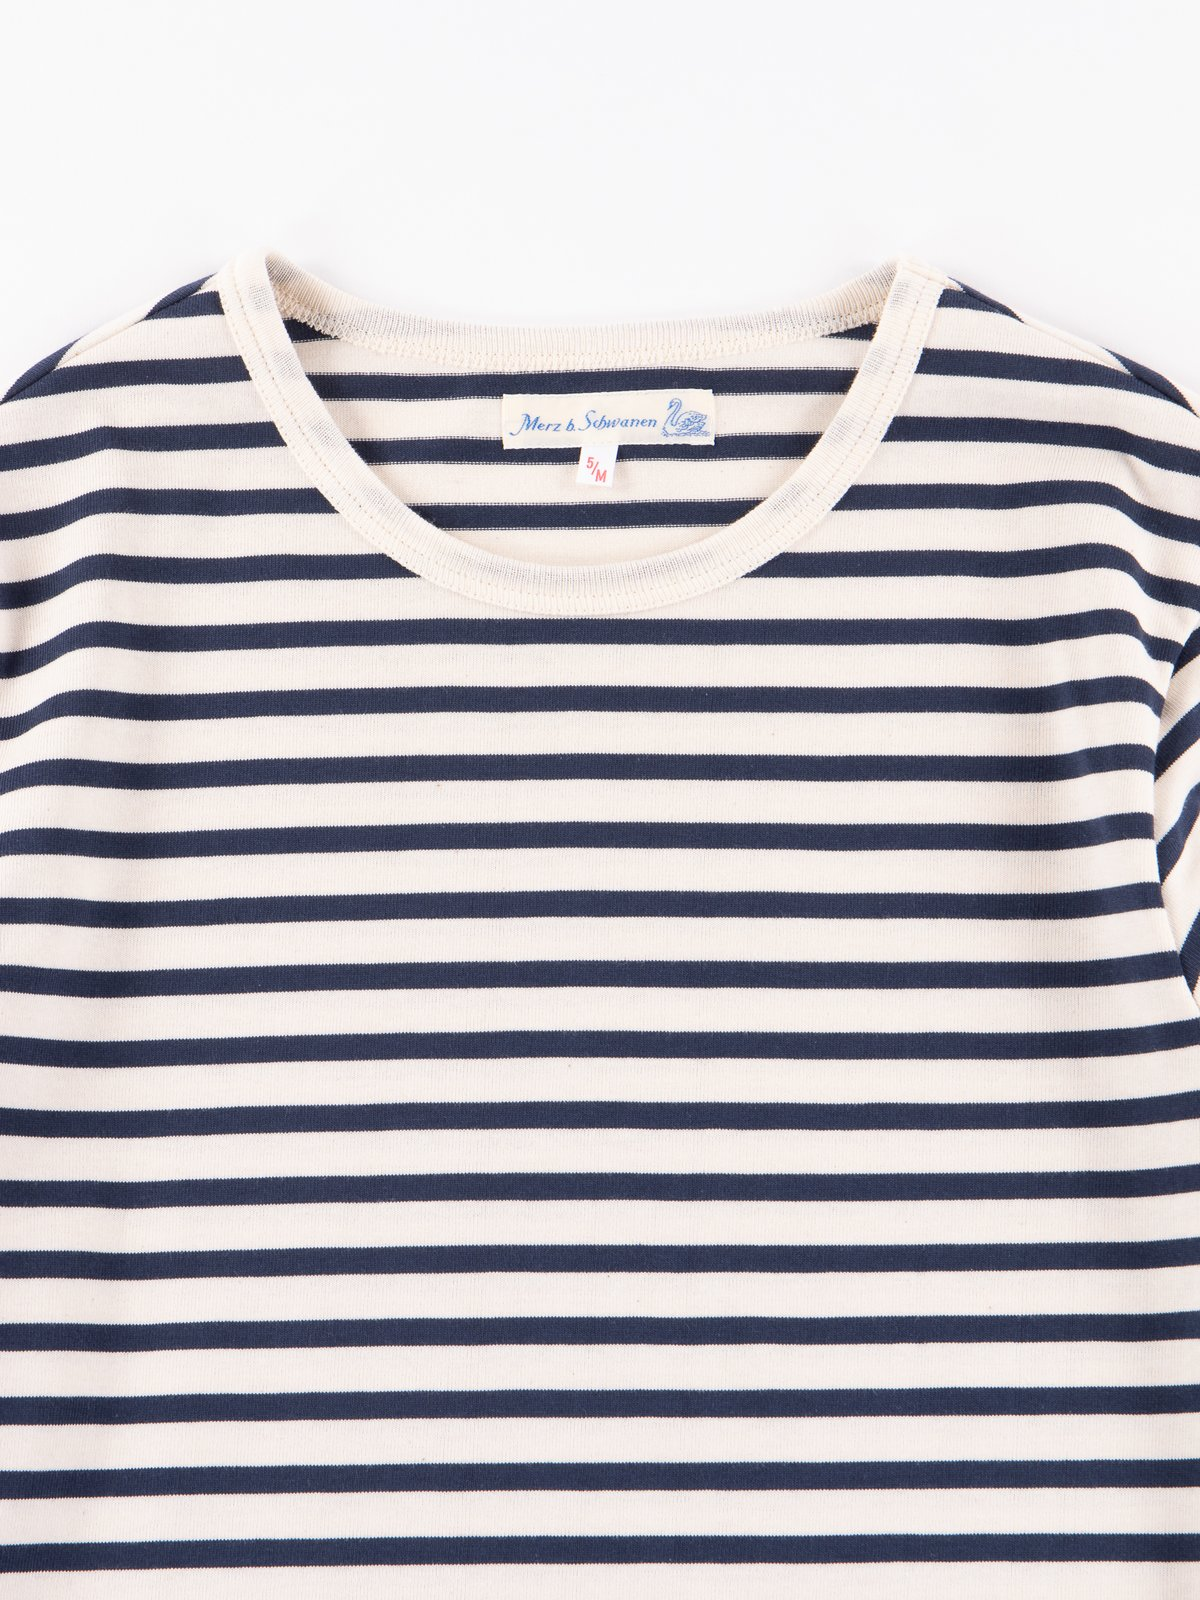 Ink/Natural Stripe 2M12 Crew Neck Long Sleeve Tee - Image 2